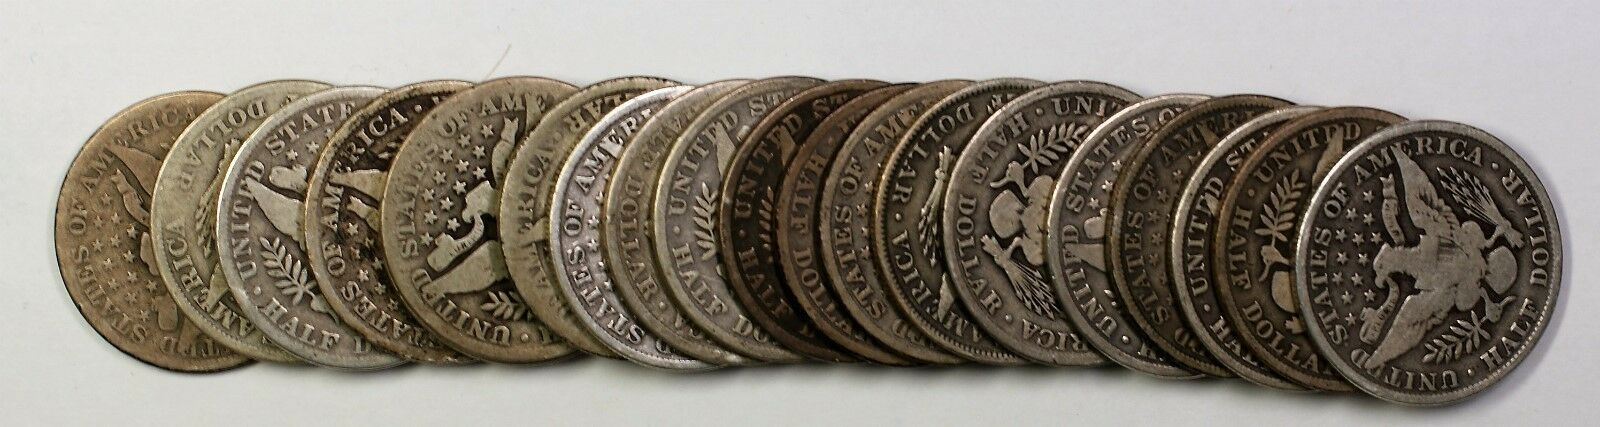 1912 Barber Half Dollar 50c Roll 20 Circulated 90% Old Silver Coins Lot